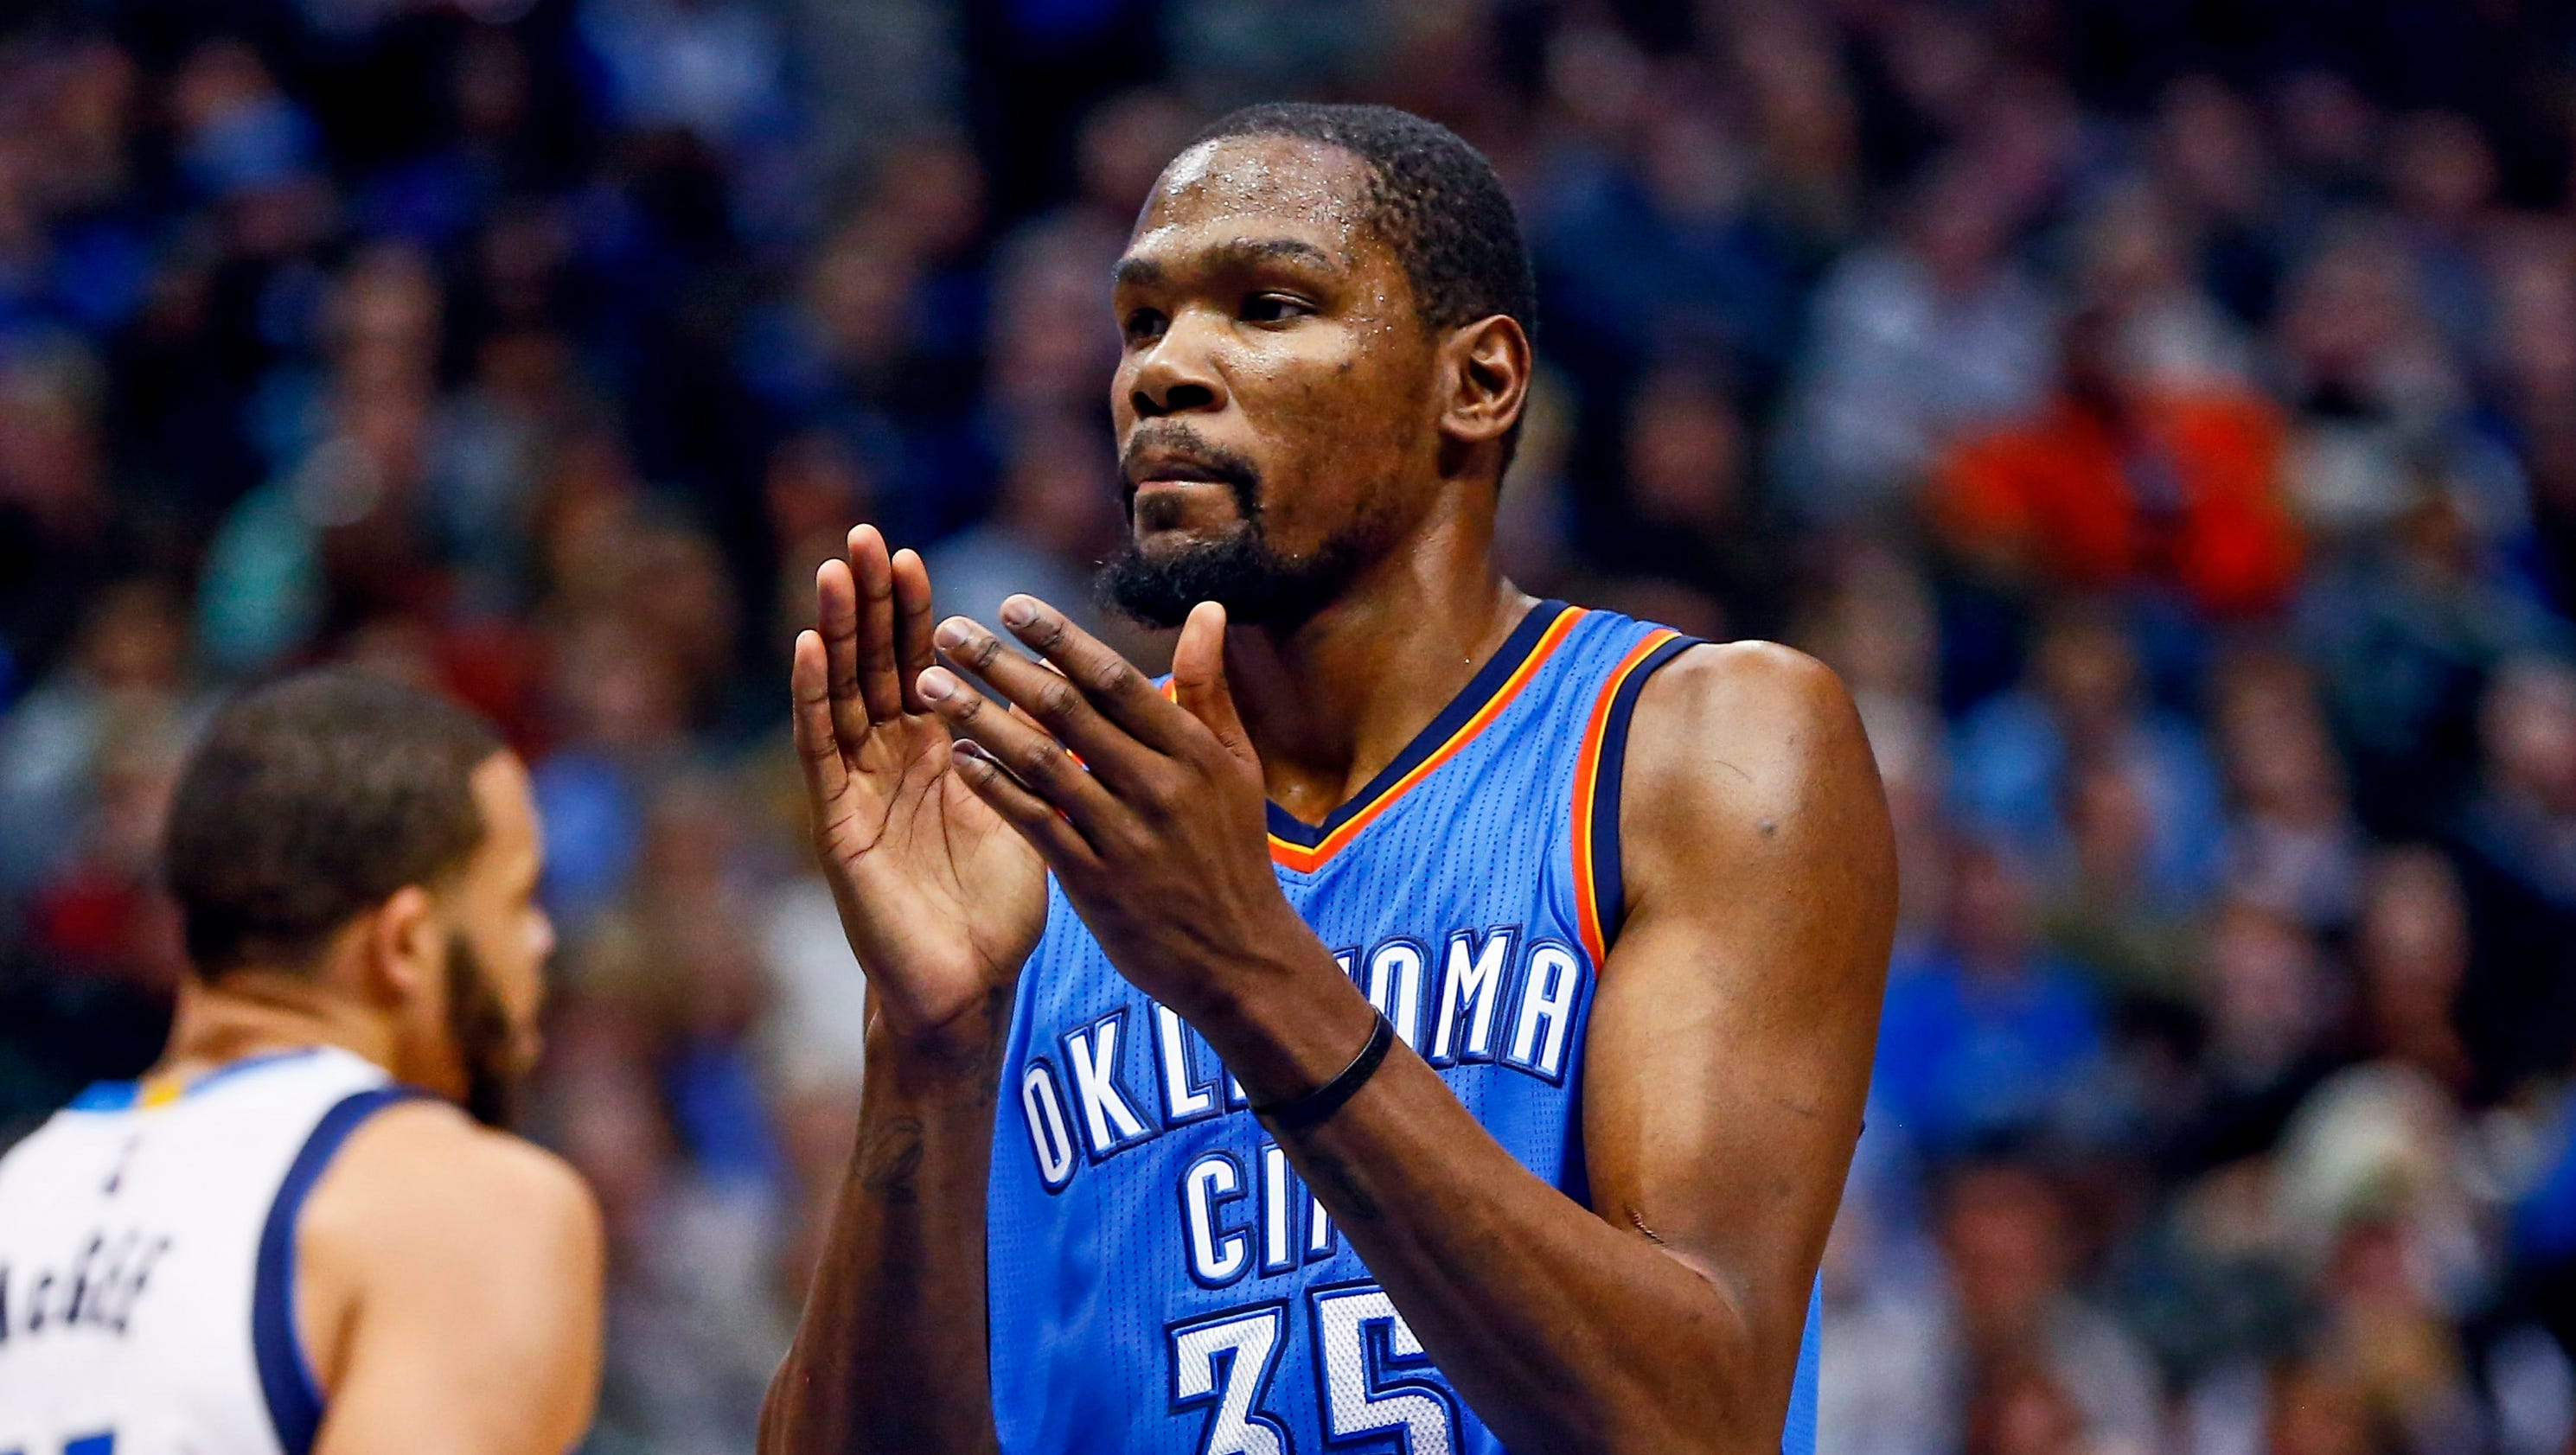 Will the Celtics' big splash be enough to lure Kevin Durant to Boston?